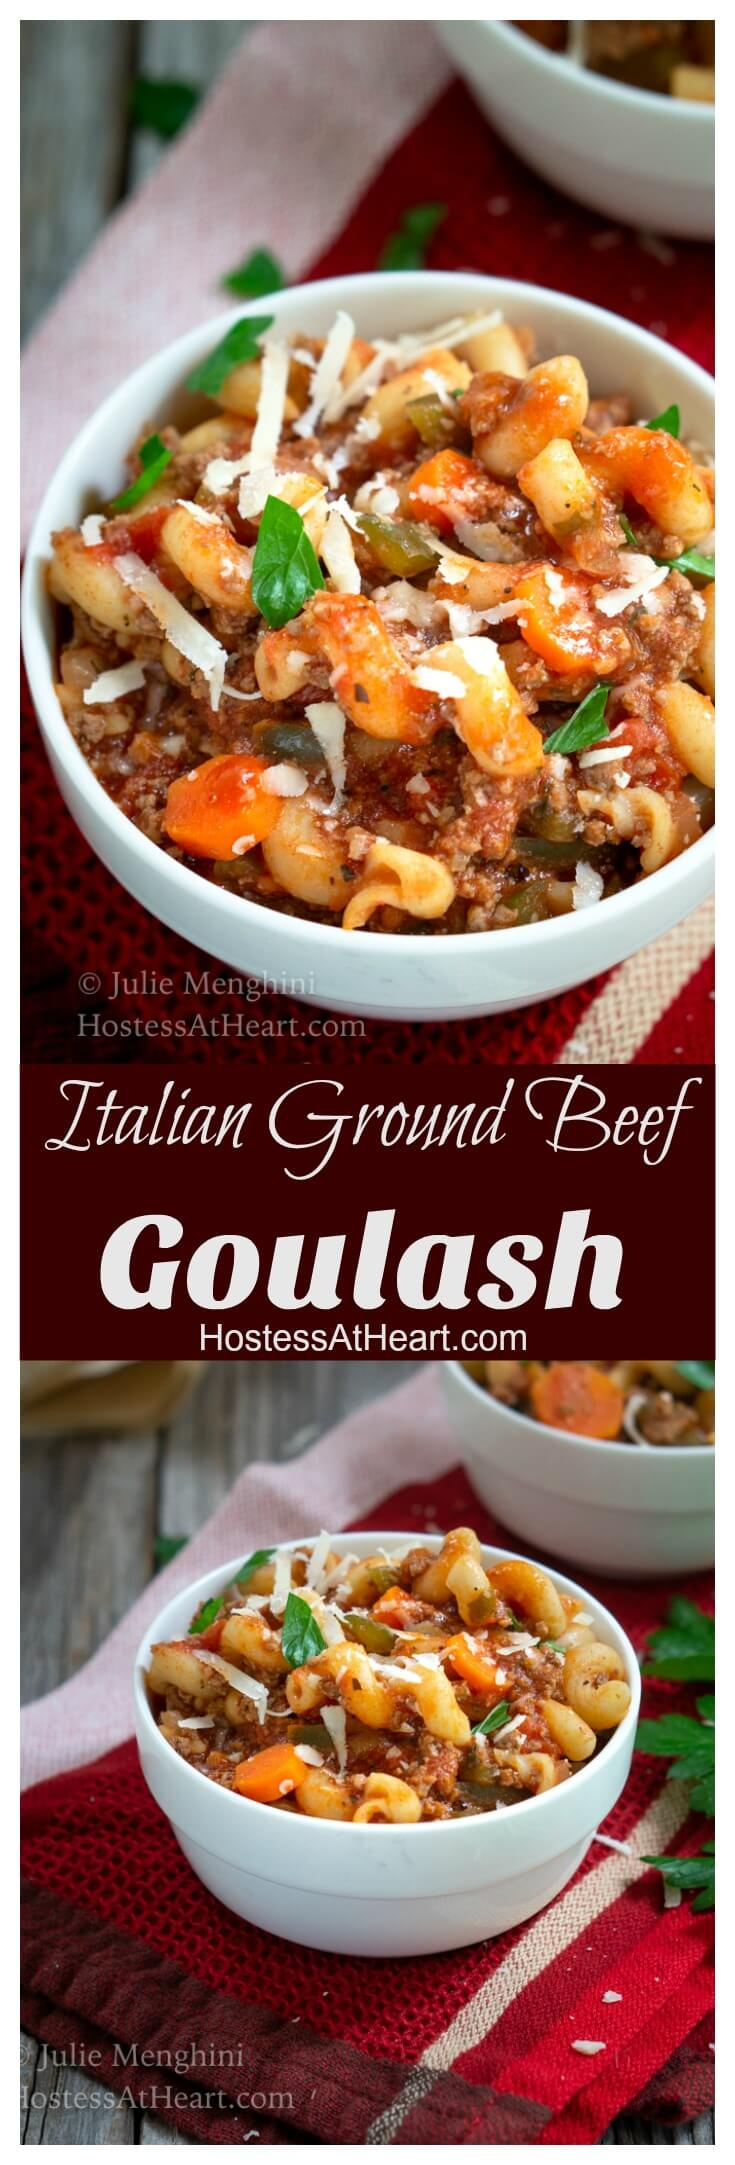 Italian Ground Beef Goulash is a spin on a classic that everyone's going to love.  Goulash is comfort food at it's finest and makes the perfect anytime meal! #pasta #garlic #parmesan #cheese #comfortfood #dinner #cooking #recipes #easy